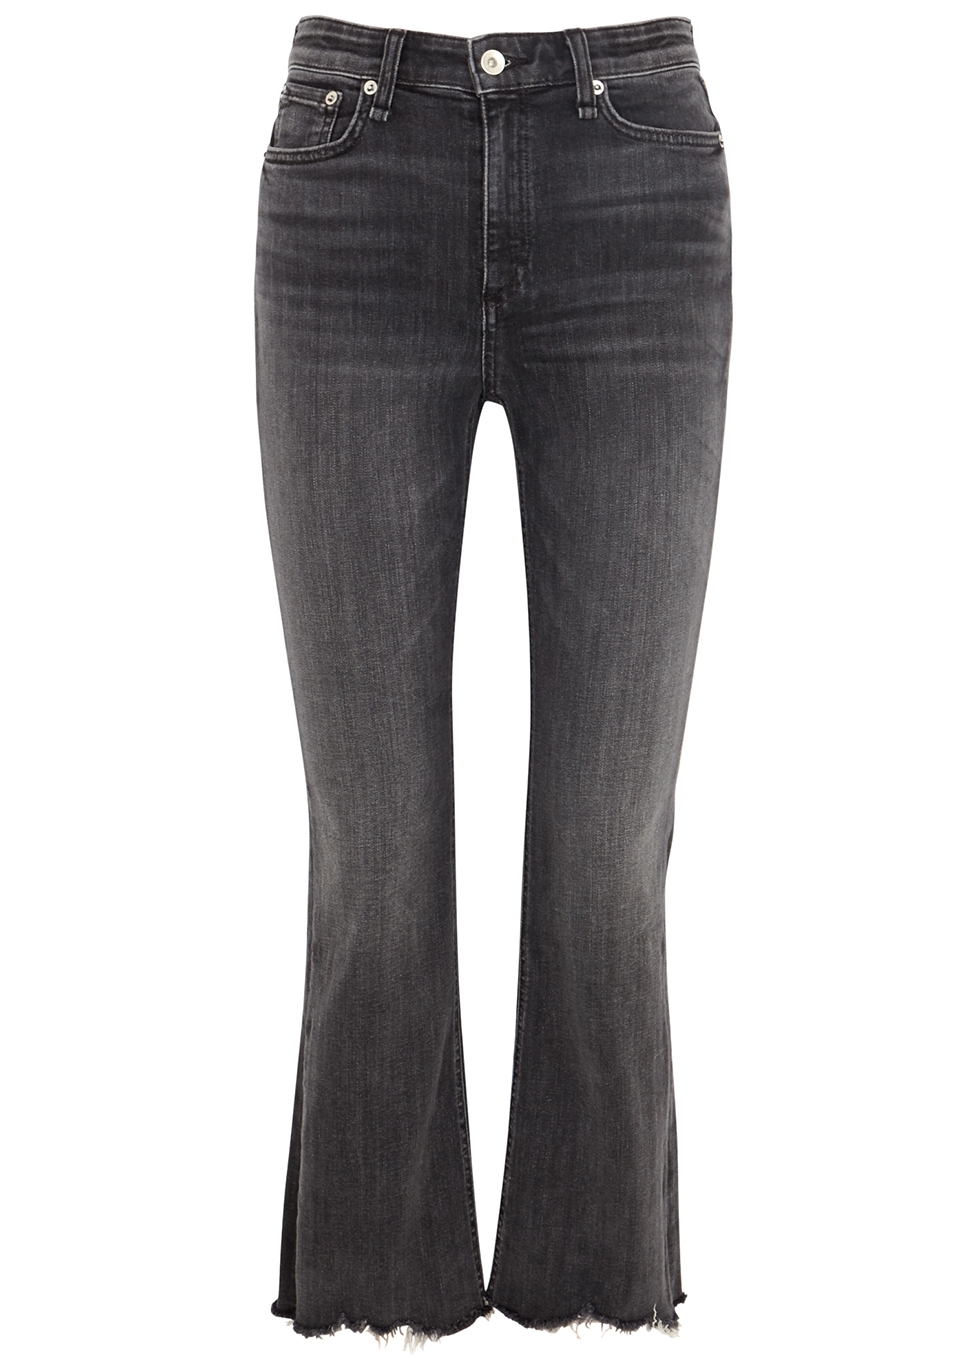 Nina grey flared-leg jeans - rag & bone /JEAN